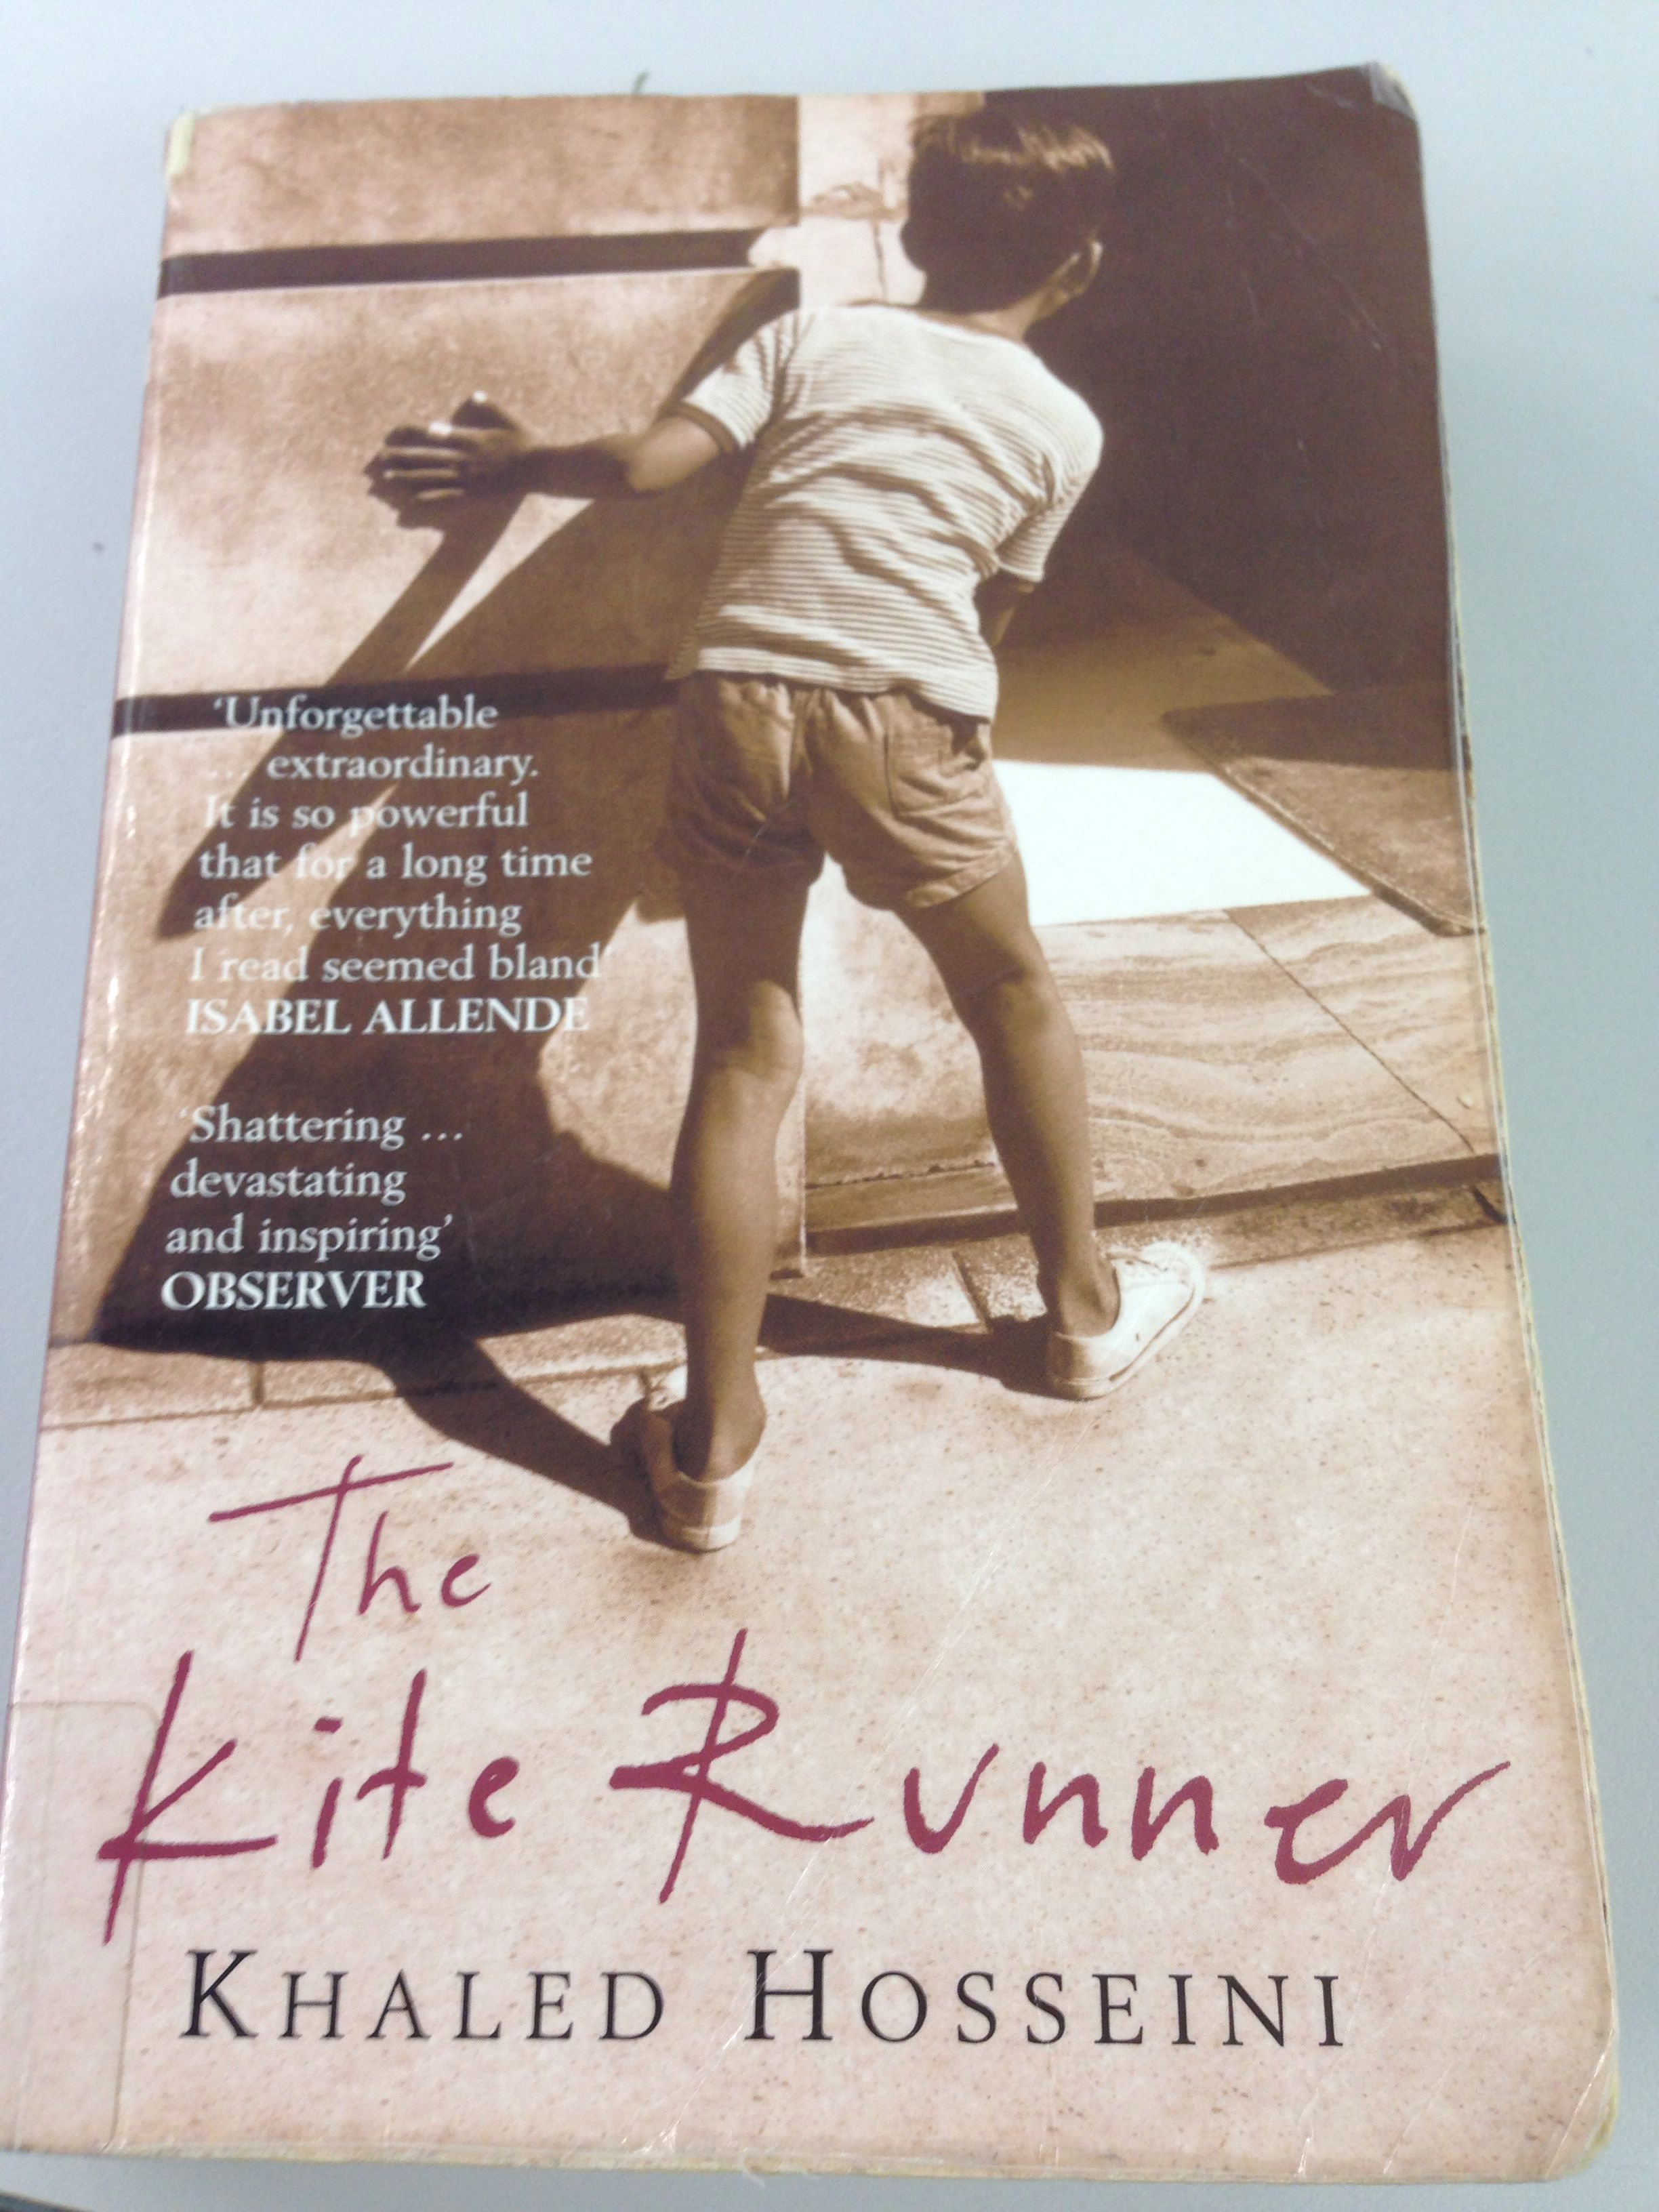 The Kite Runner (2007) IMDb (With images) The kite